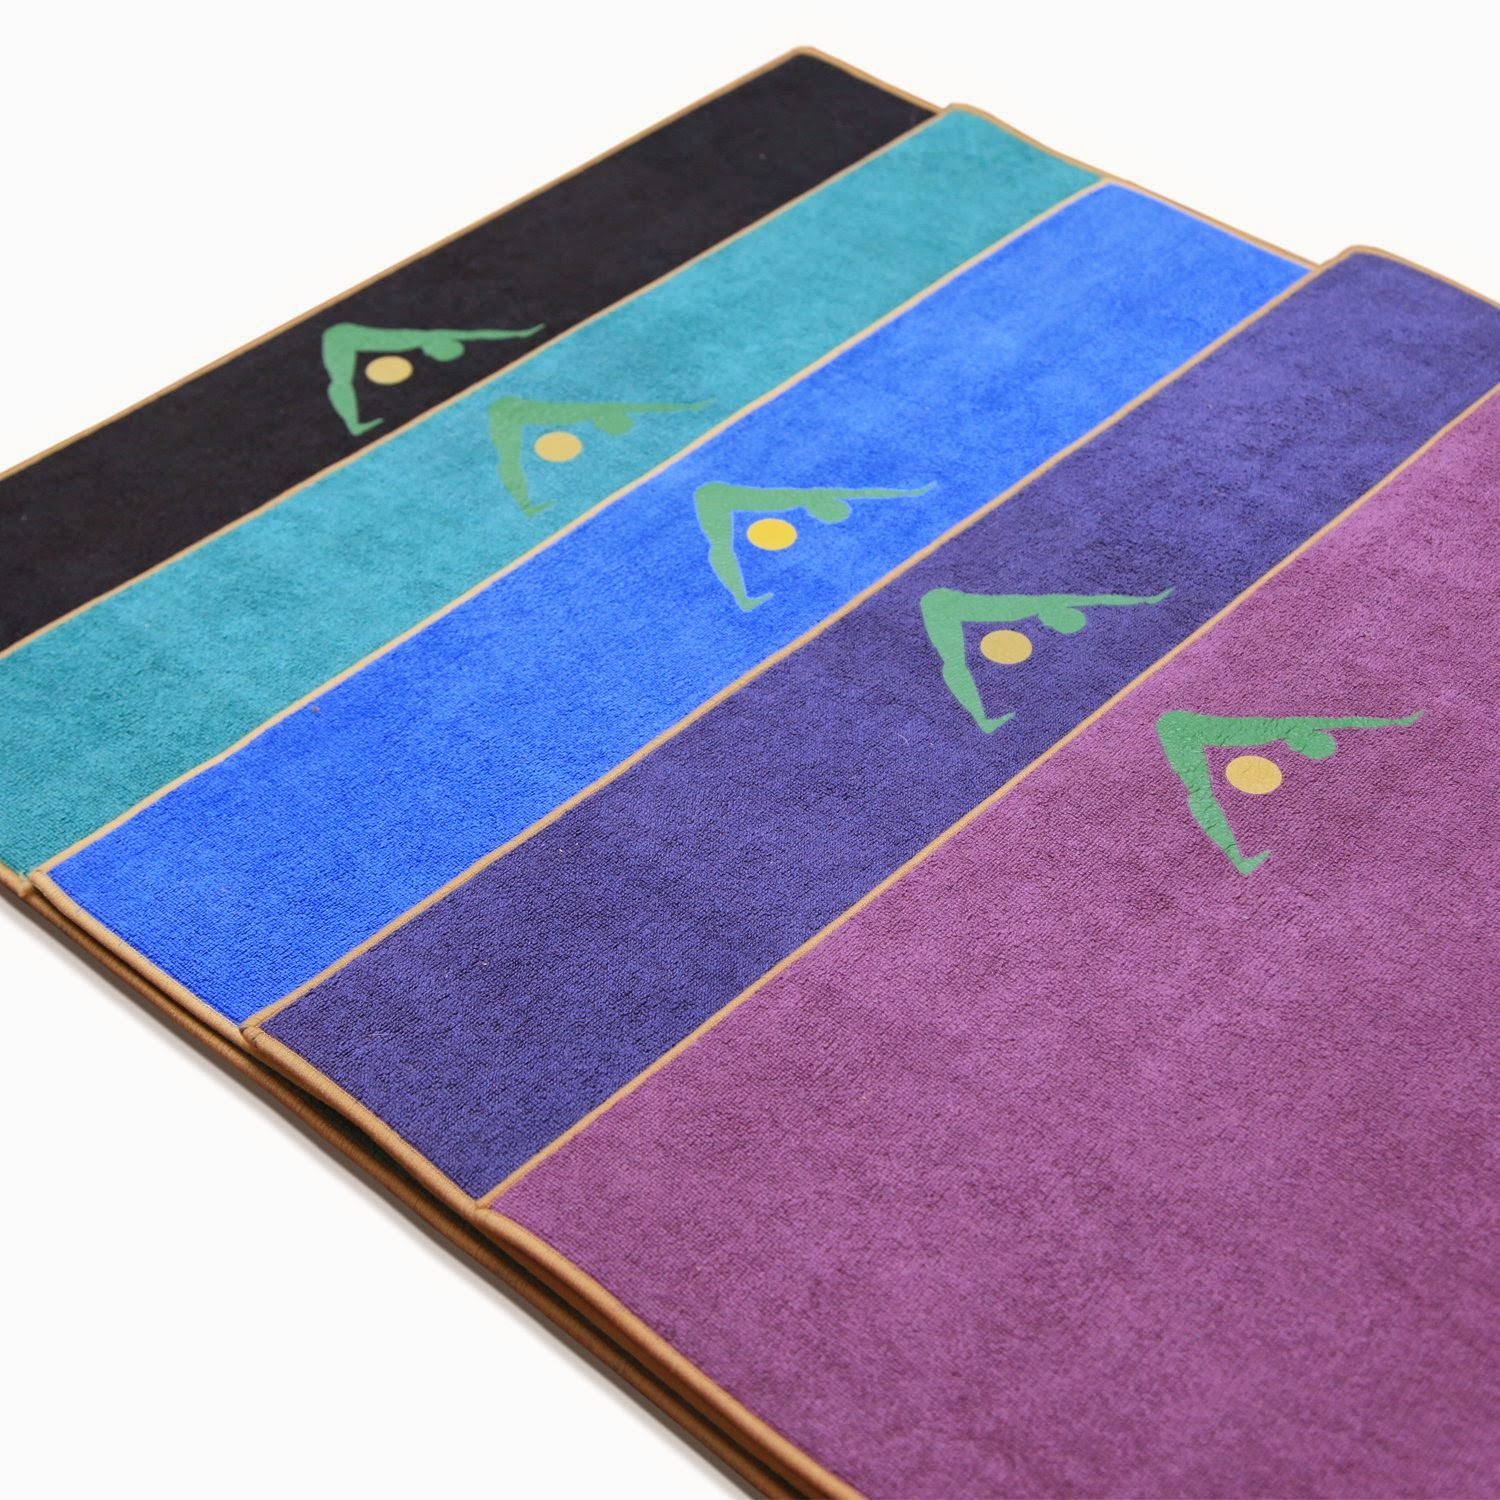 Yoga For Back Pain: Yoga Mats And Accessories